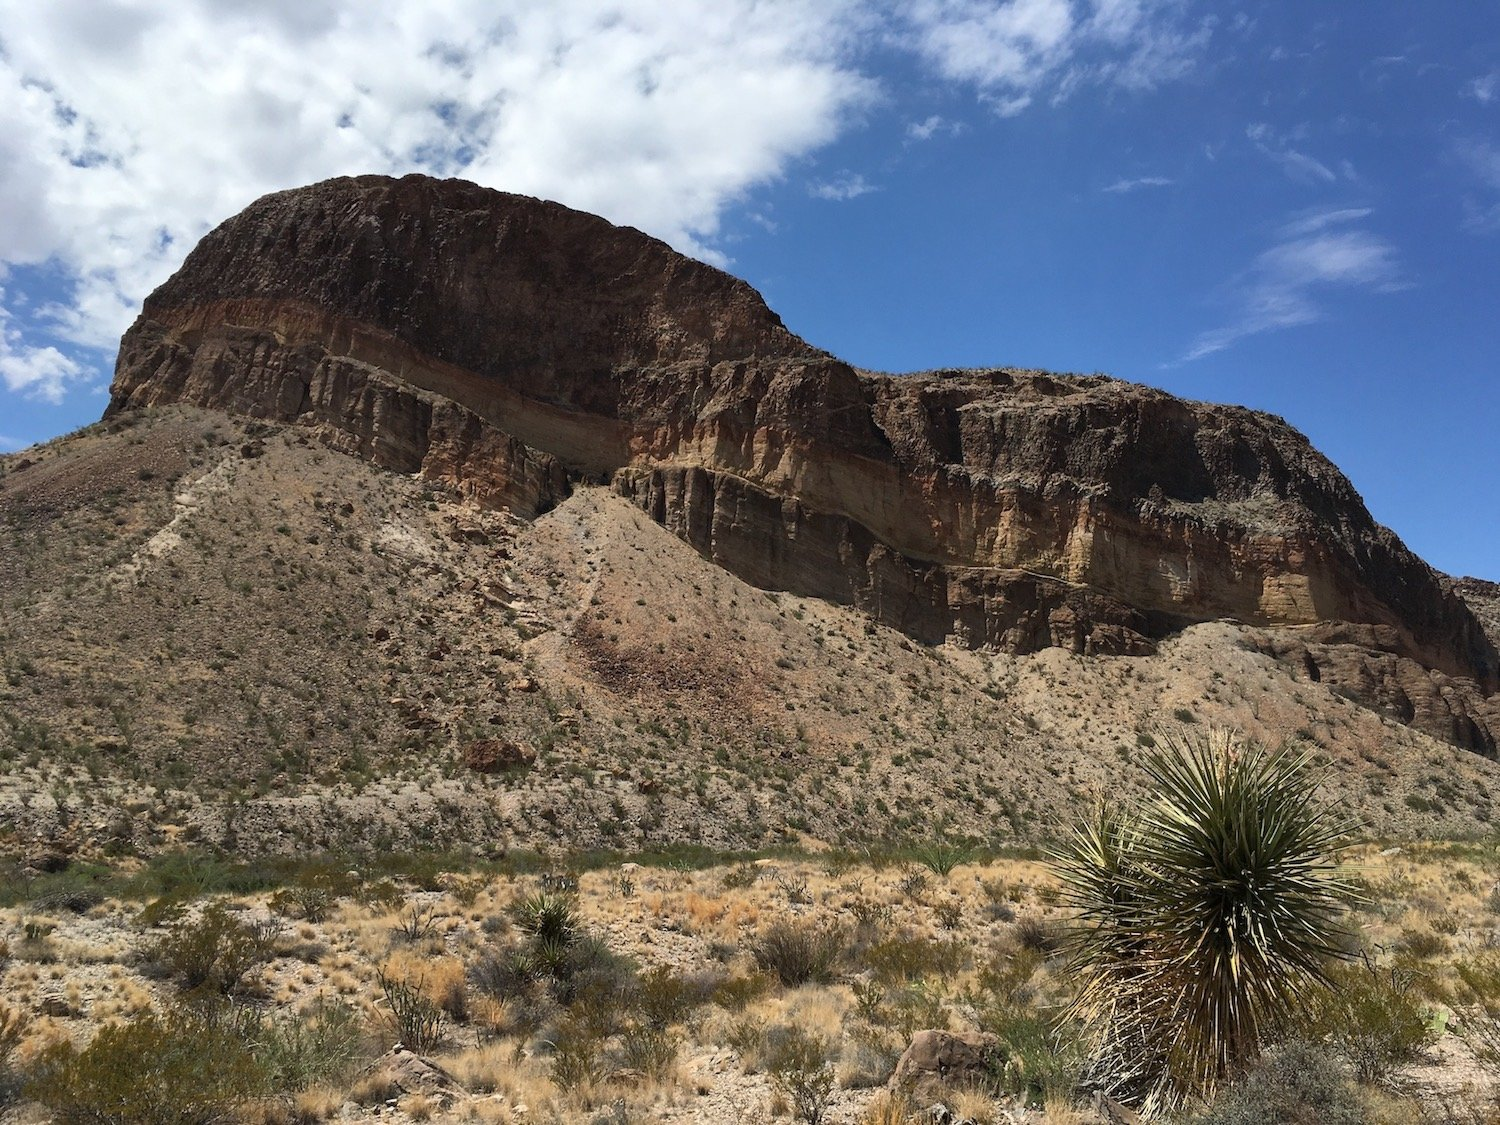 Burro Mesa, Big Bend NP